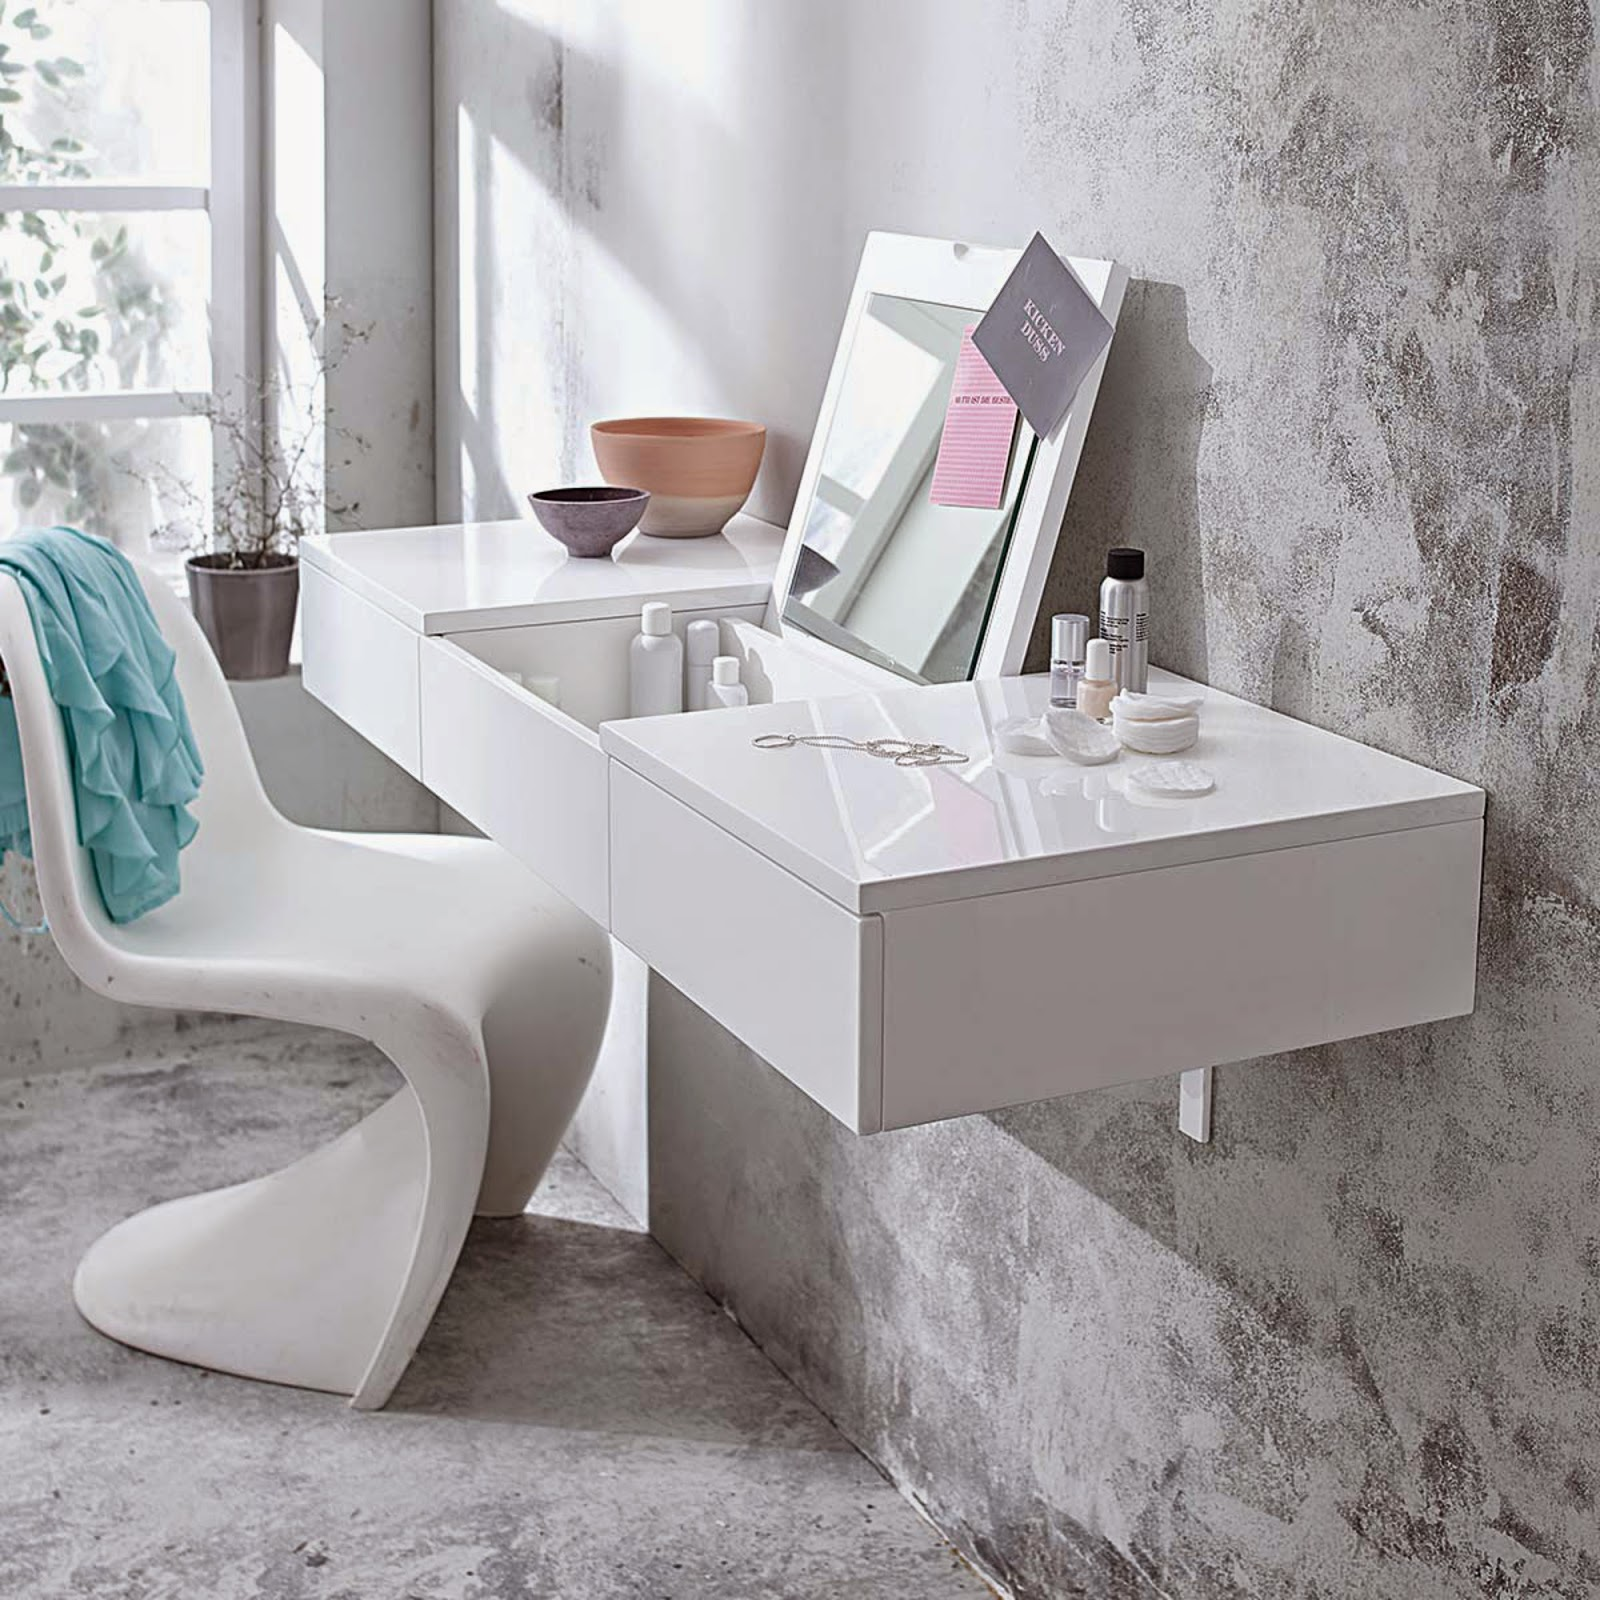 Full Catalog Of Dressing Table Designs Ideas And Styles